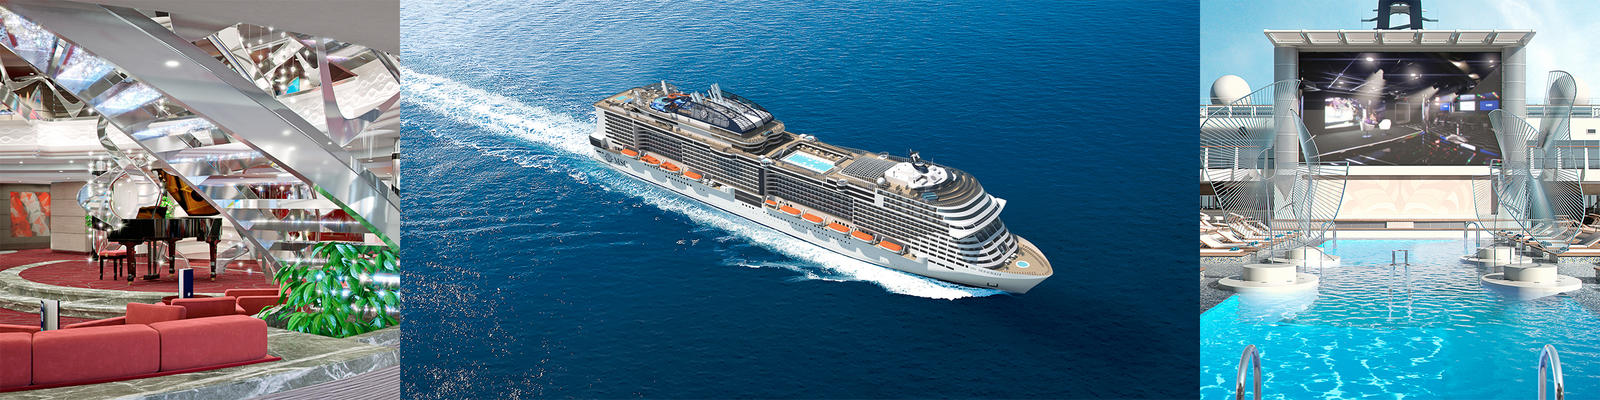 MSC Meraviglia Cruise Ship Review Photos Departure Ports On